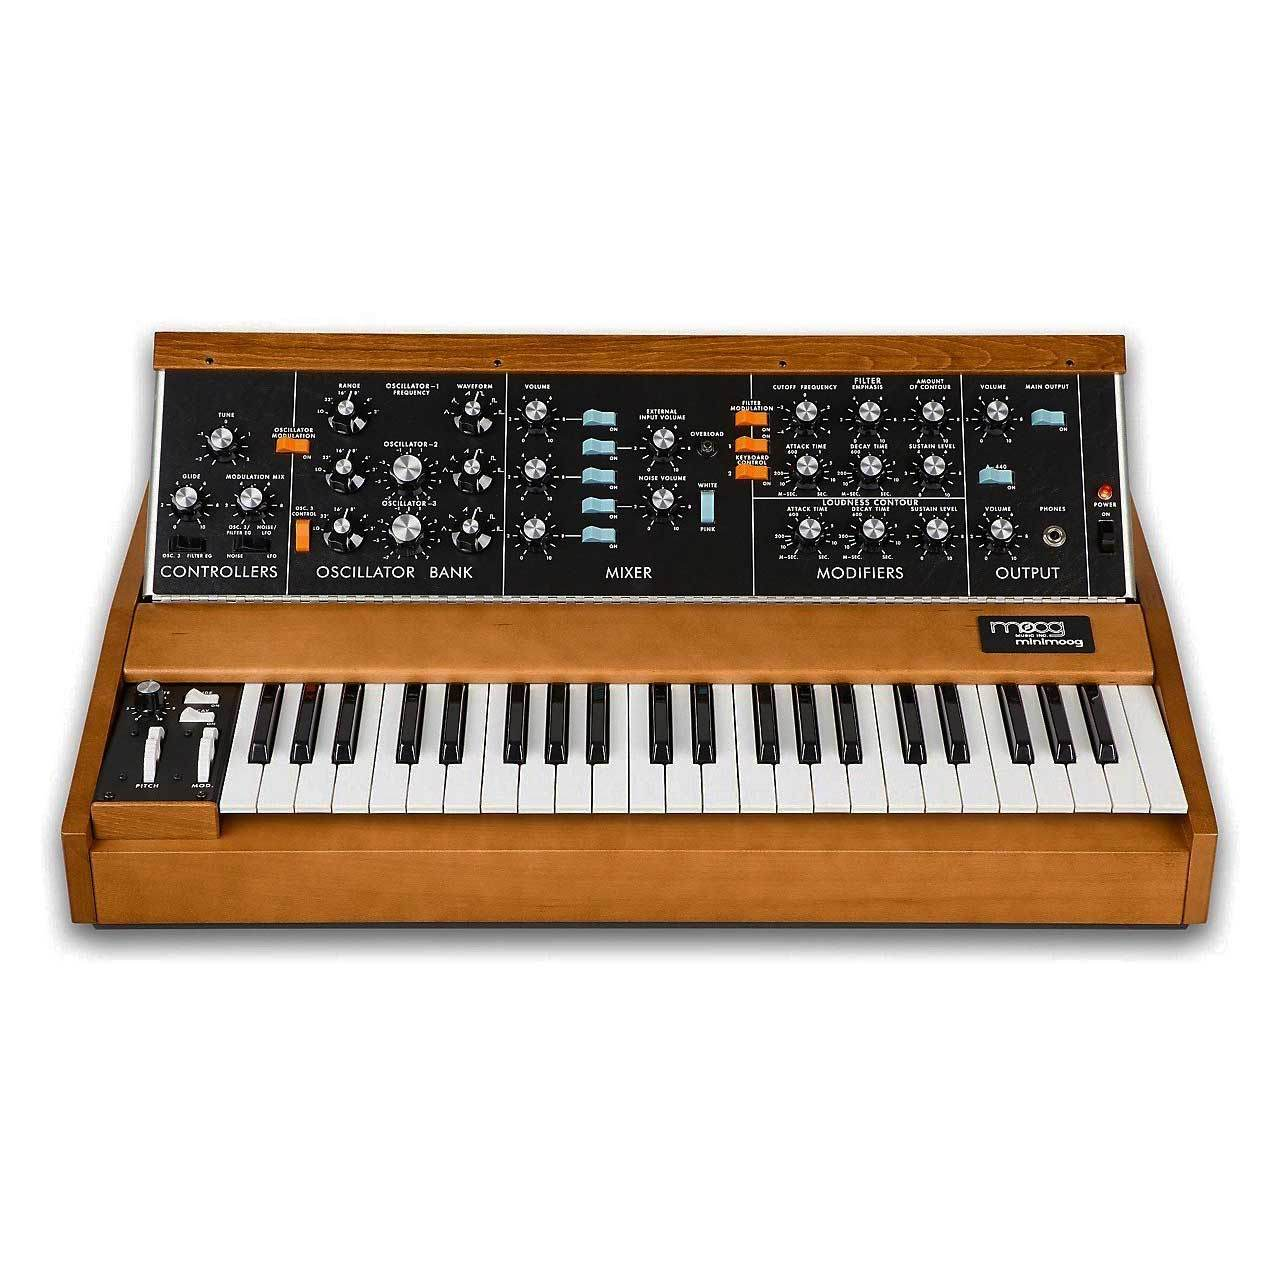 Keyboard Synthesizers - Moog Minimoog Model D - 3-oscillator Monophonic Analog Synthesizer